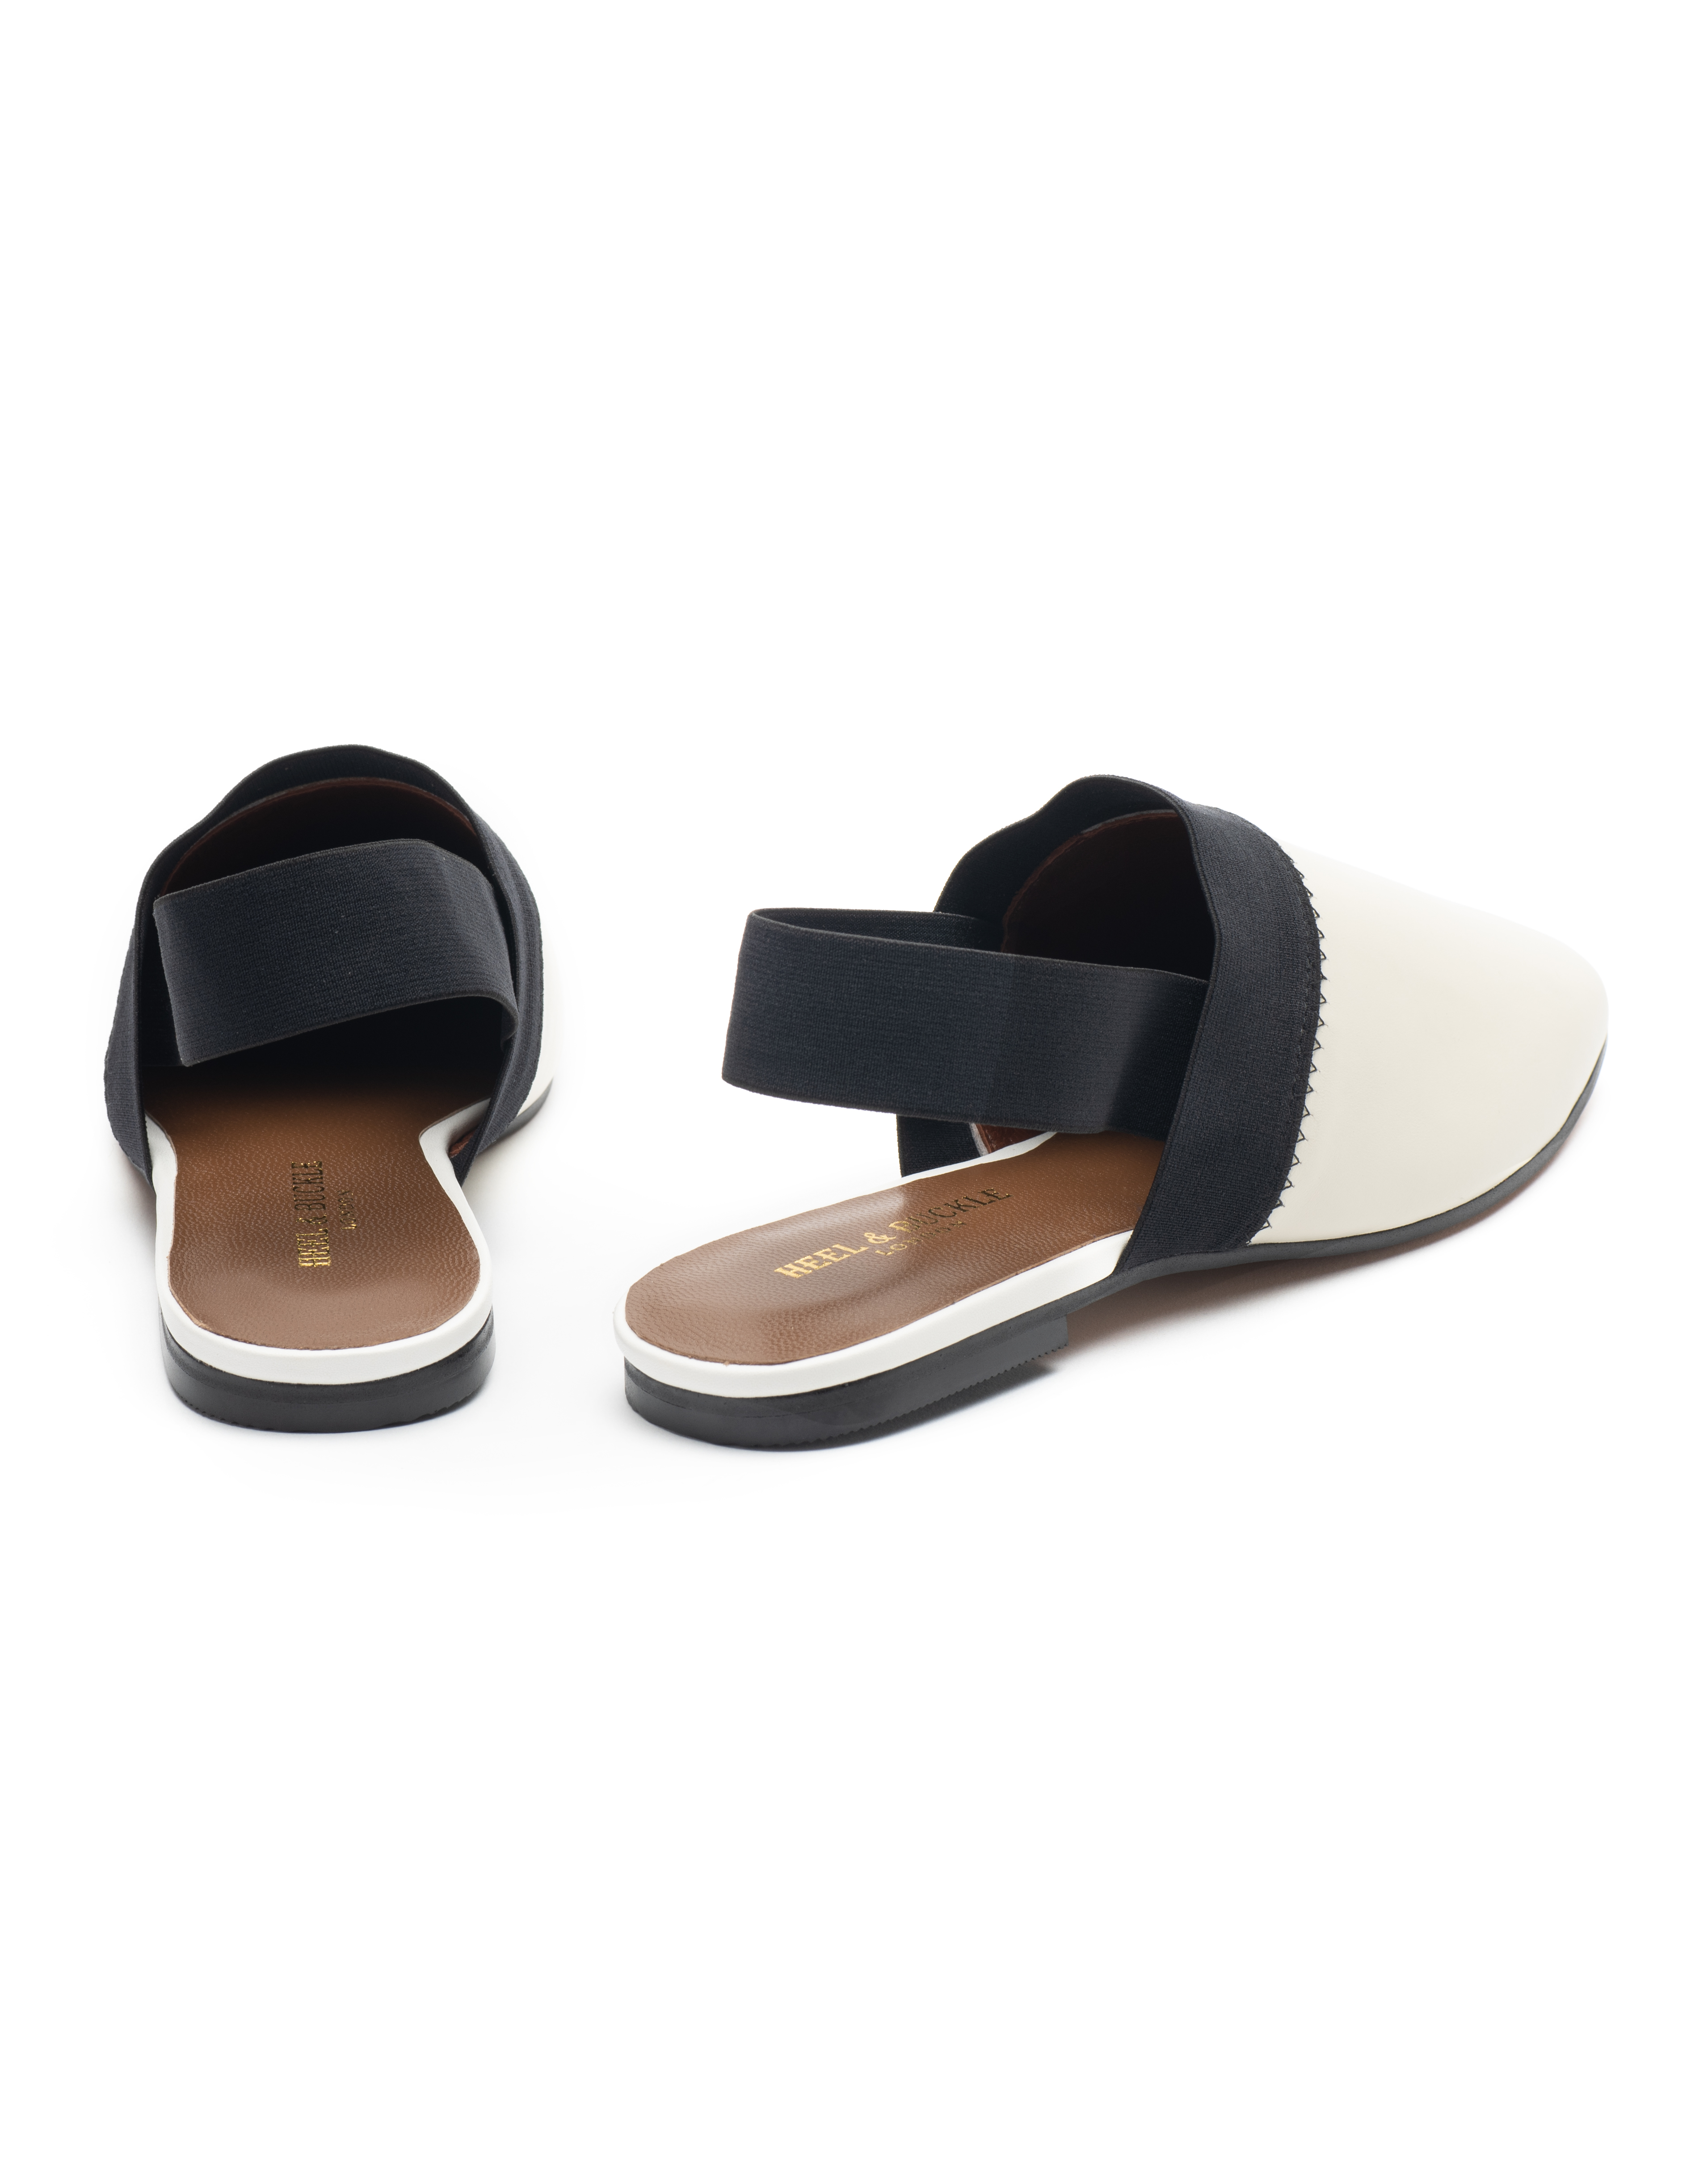 Heel _ Buckle London-Shoes-R178-1-Closed flats-White-3